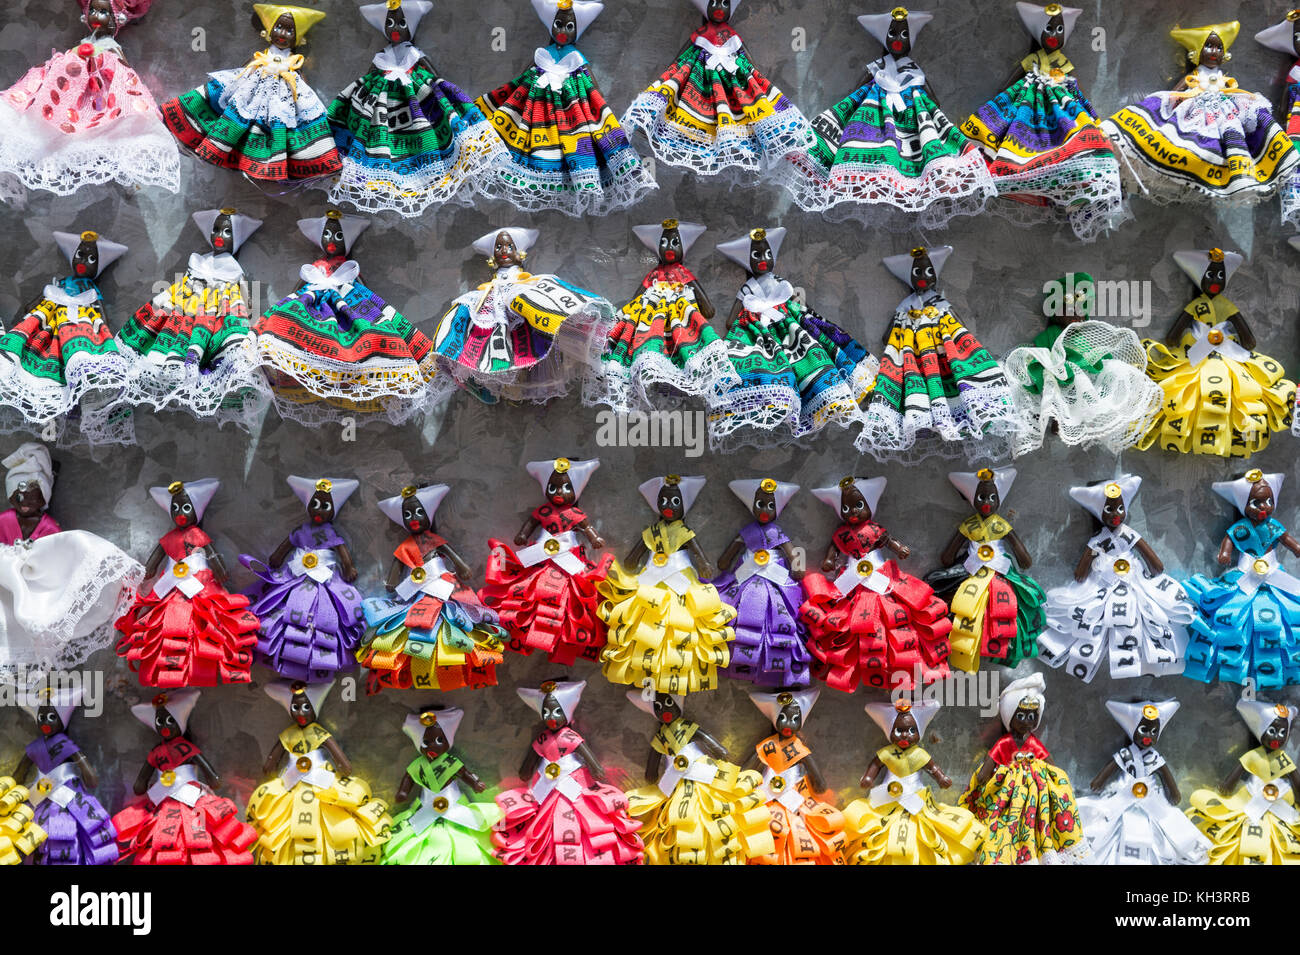 Colorful, souvenir, fridge magnet figurines of women from bahia in traditional dress on display Salvador, Bahia, - Stock Image